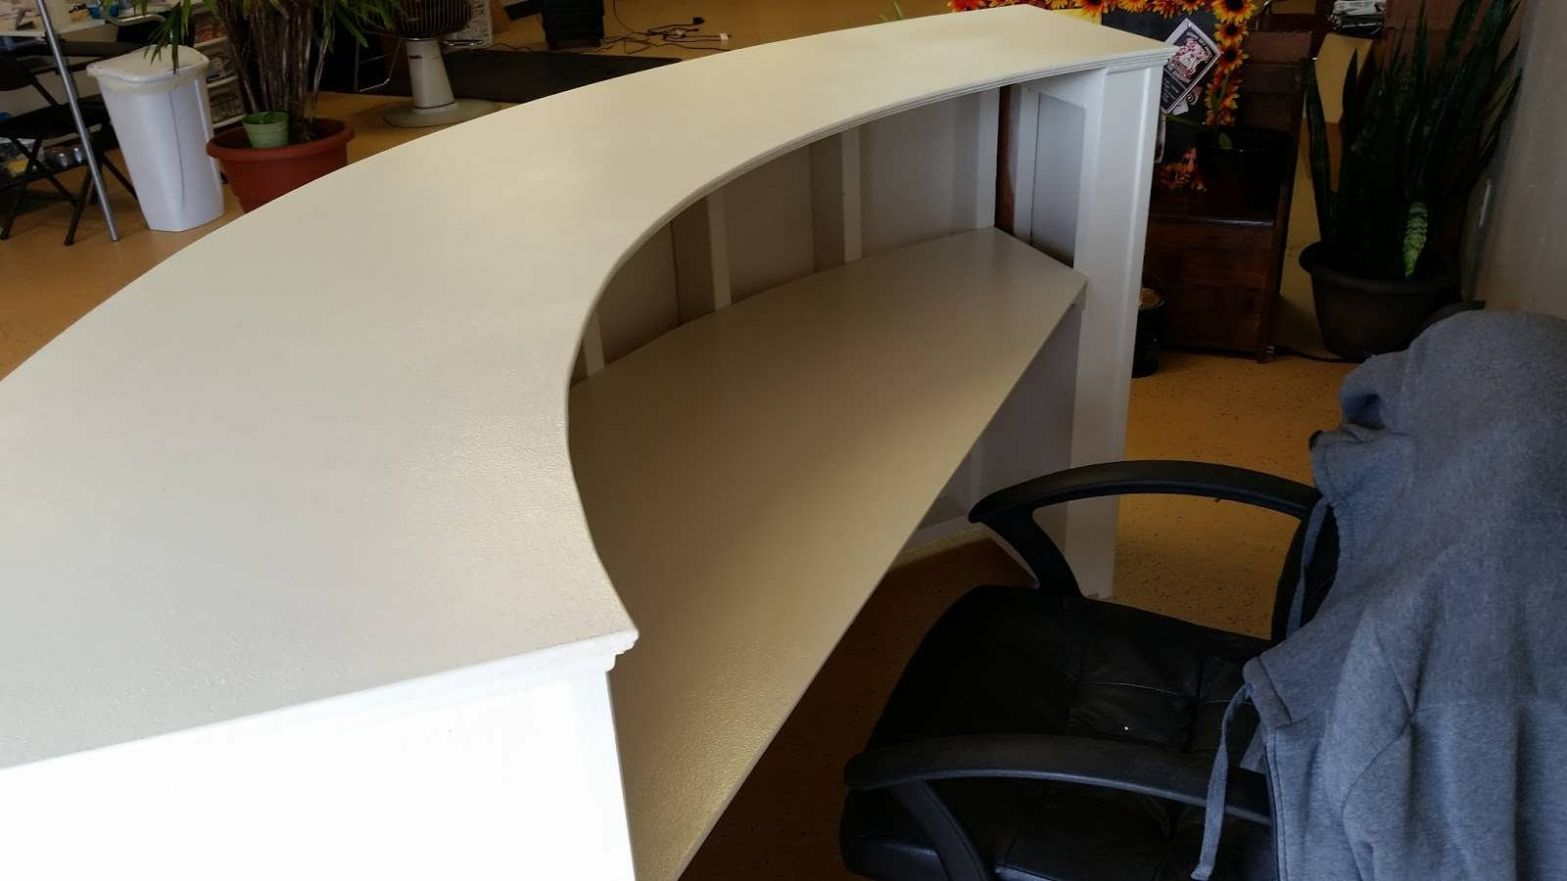 Half Round Office Table Modern Home Office Furniture Check - Half round office table